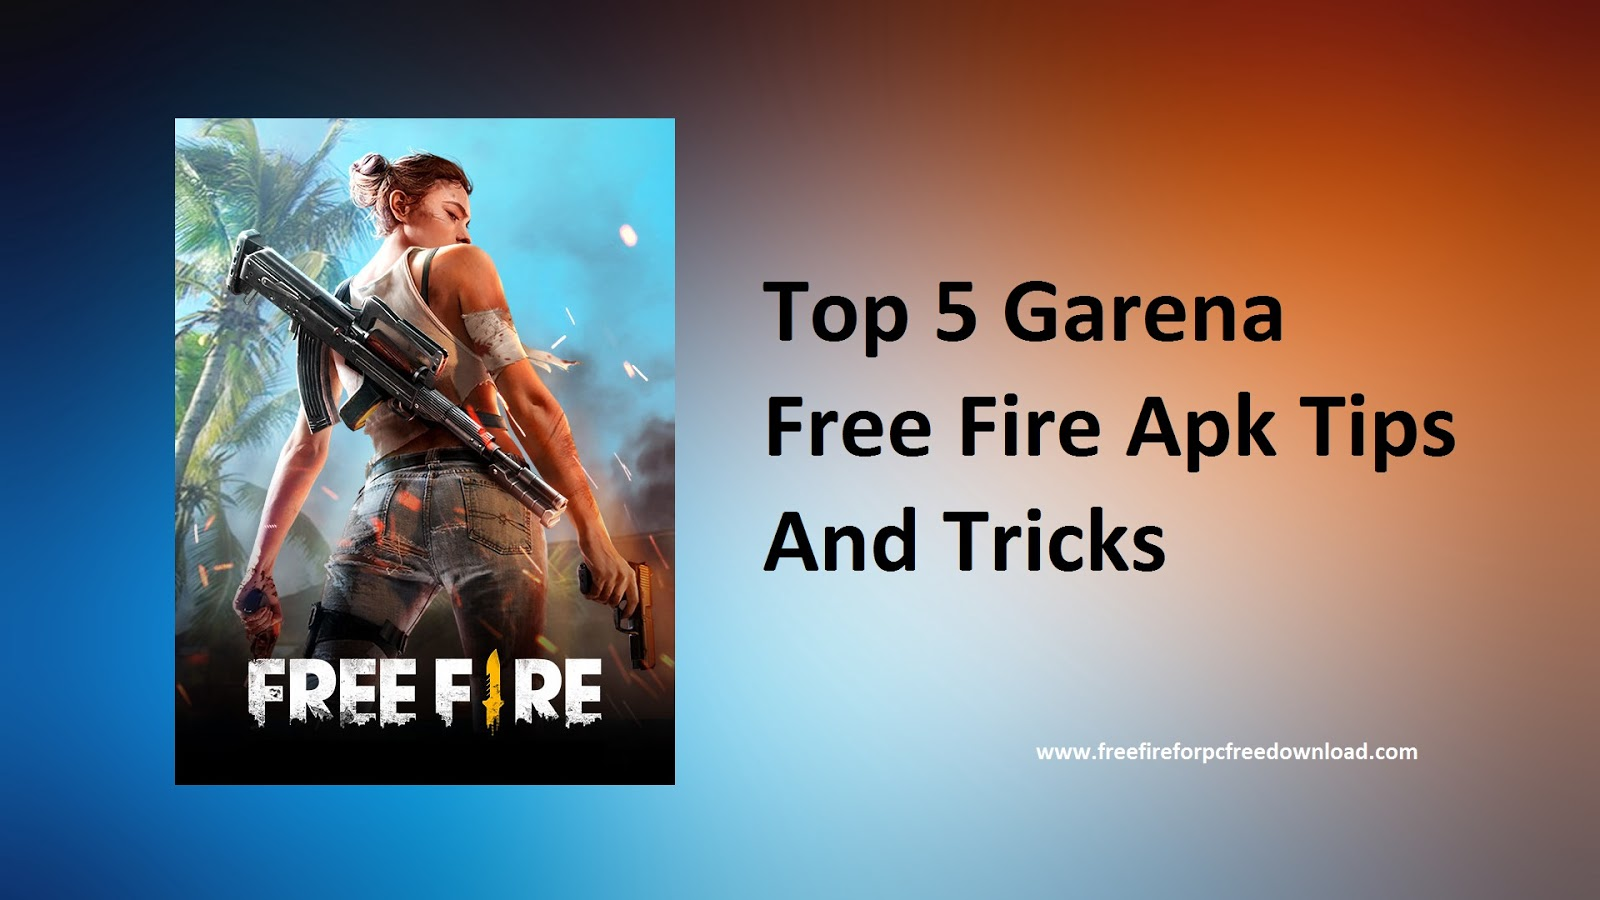 Top 5 Garena Free Fire Apk Tips And Tricks